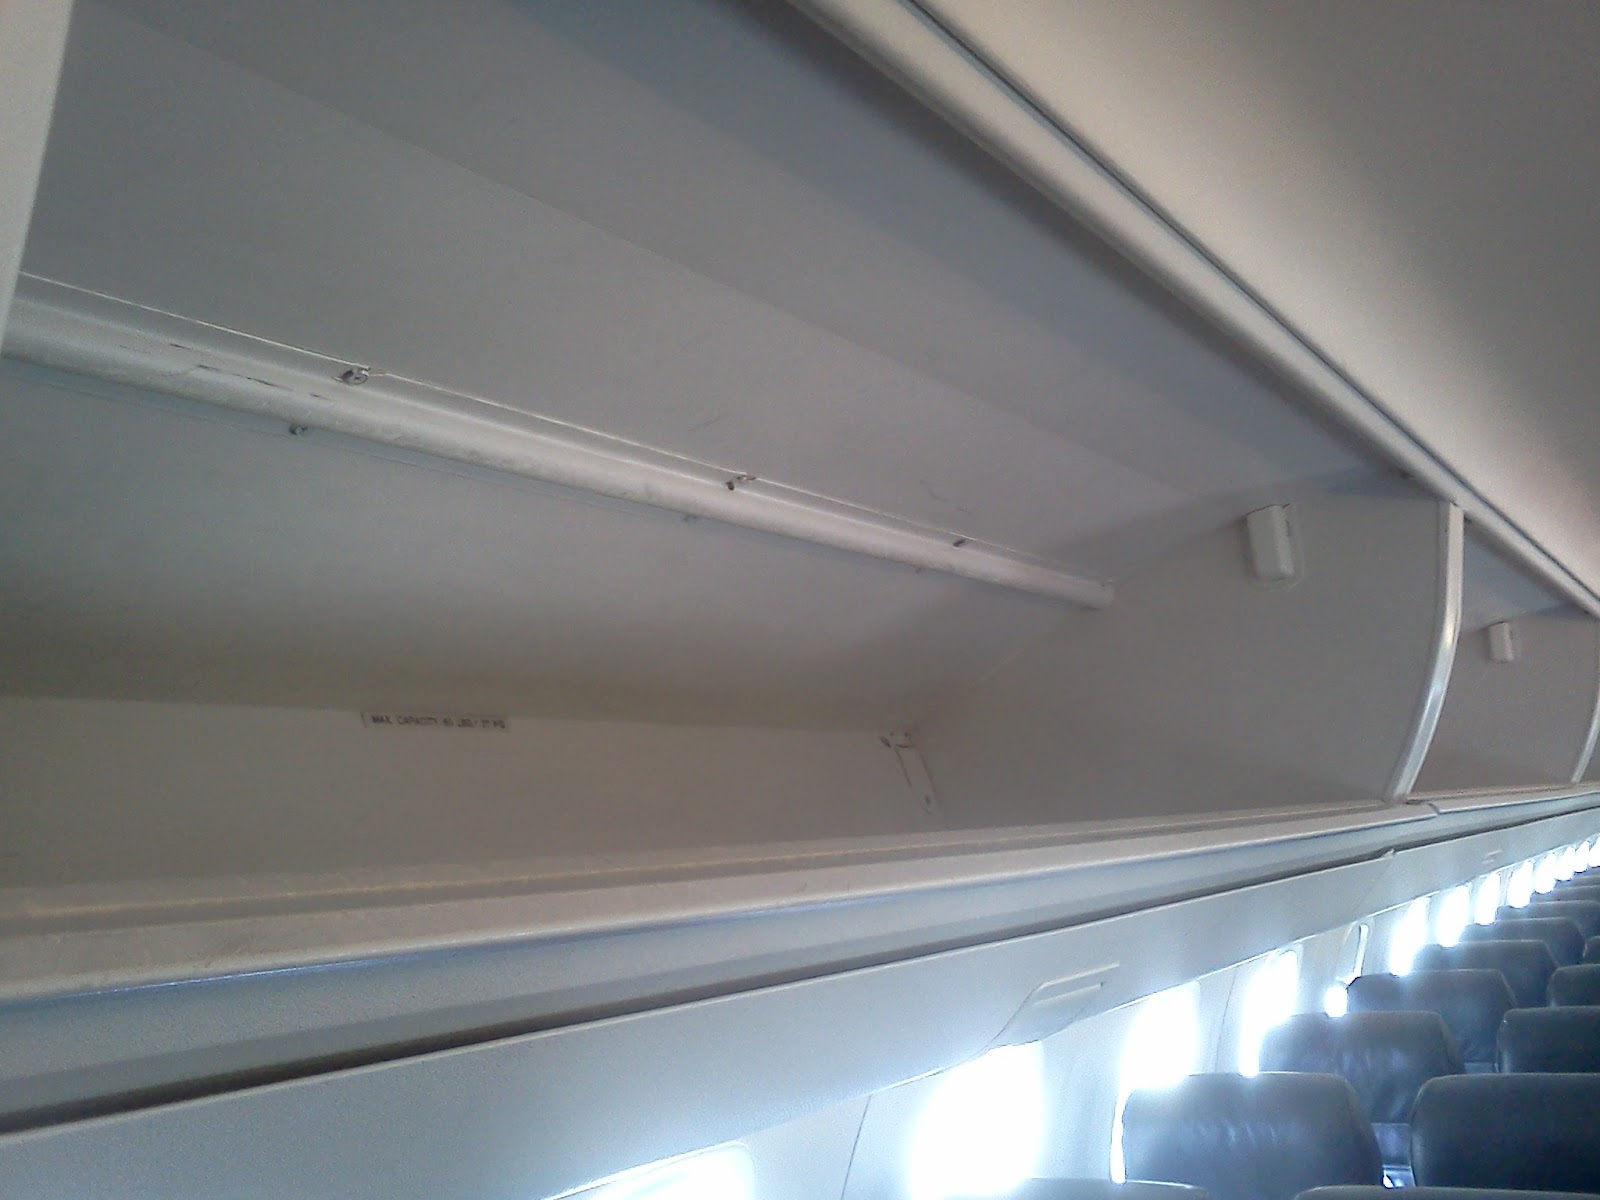 American Eagle Airlines Overhead Bin For Carry On Baggage